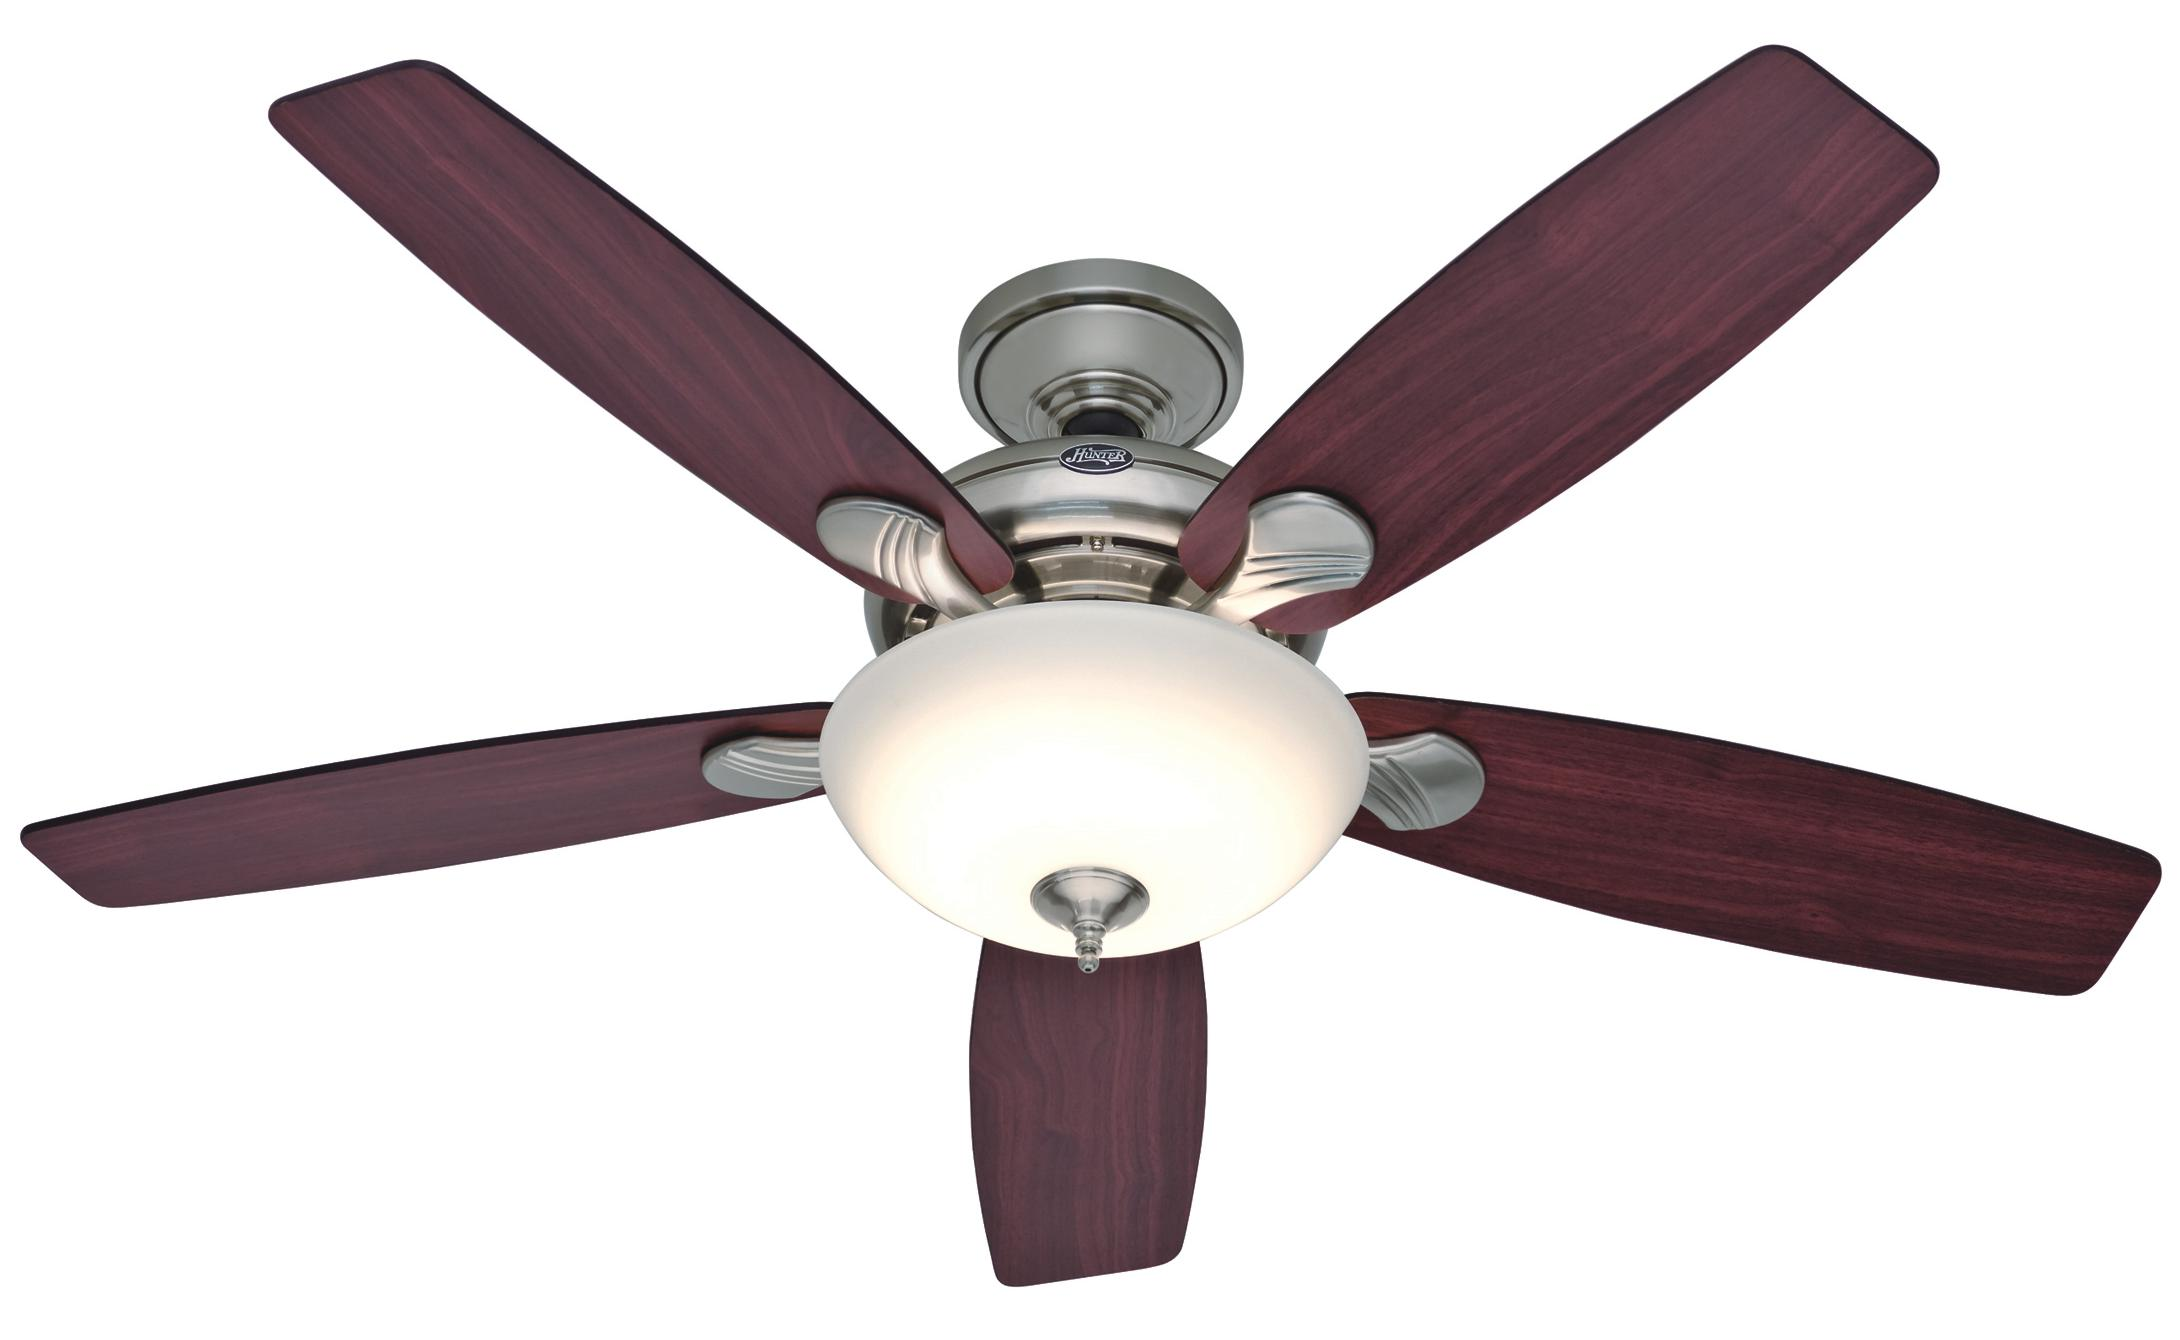 10 things to know before installing Eco ceiling fans